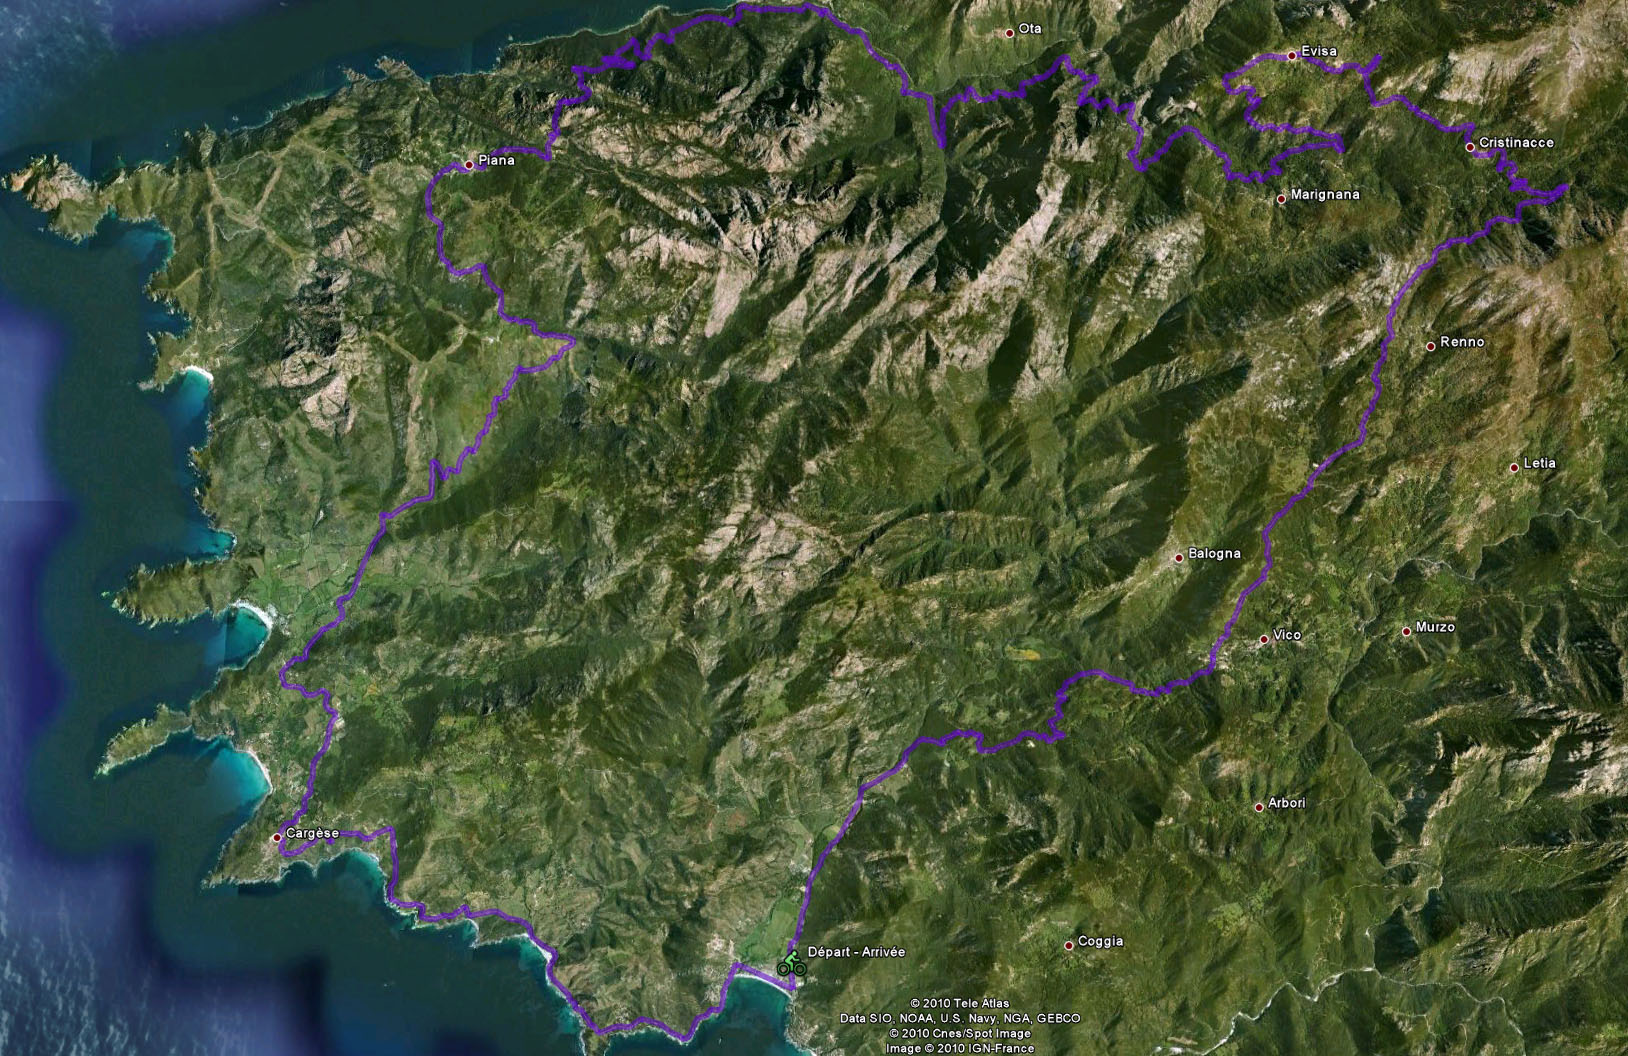 http://a-reginella.pagesperso-orange.fr/Images/Route/Parcours_A_Reginella/Reginella_2.jpg